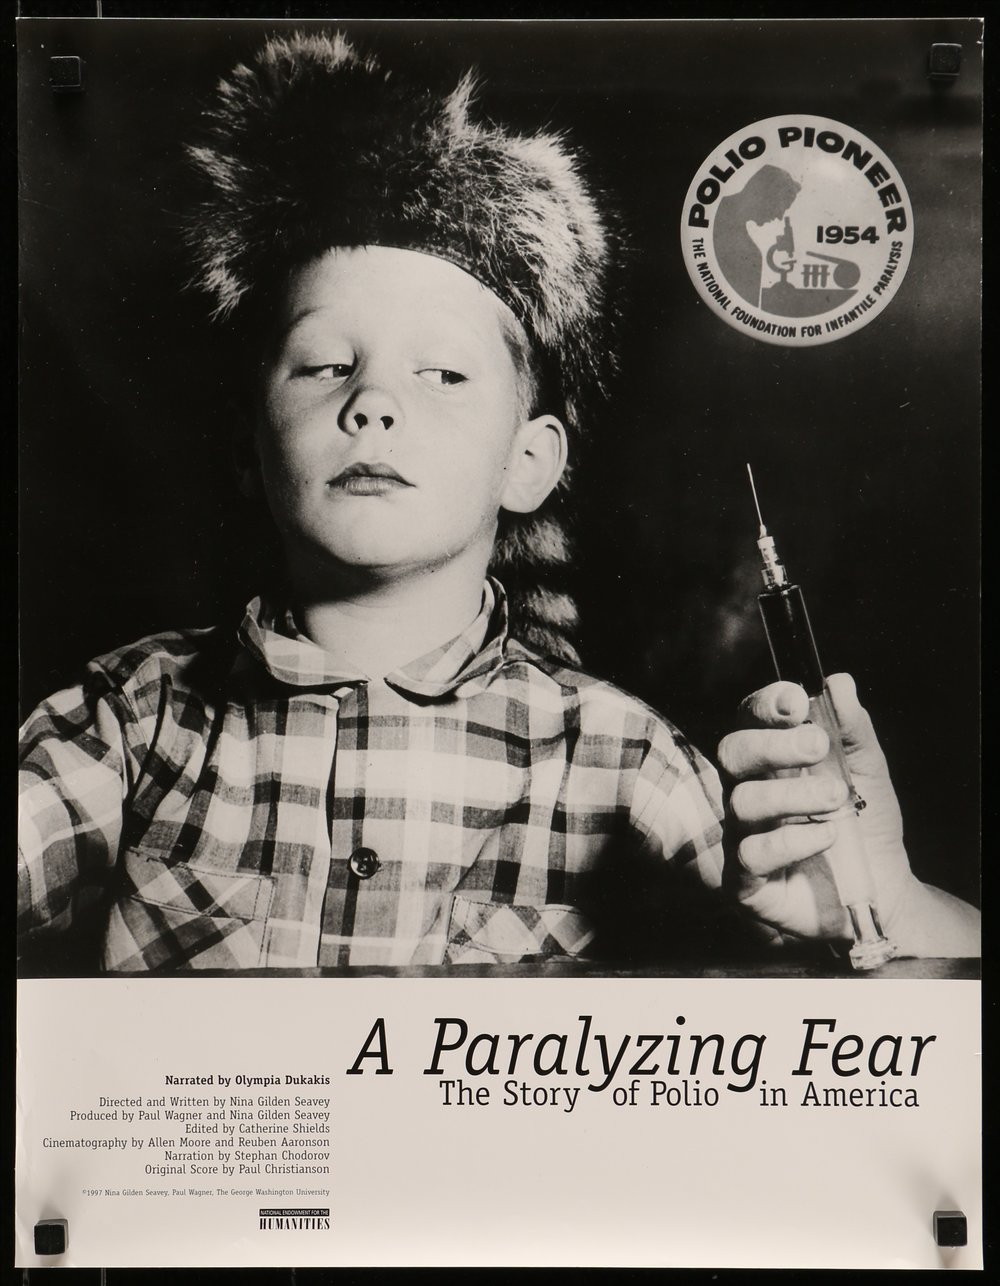 """the paralyzing fear abused children in america live in Ncfm member tim patten, """"rape and frightened women children while not instilling paralyzing fear map of north america for helping find shelter."""